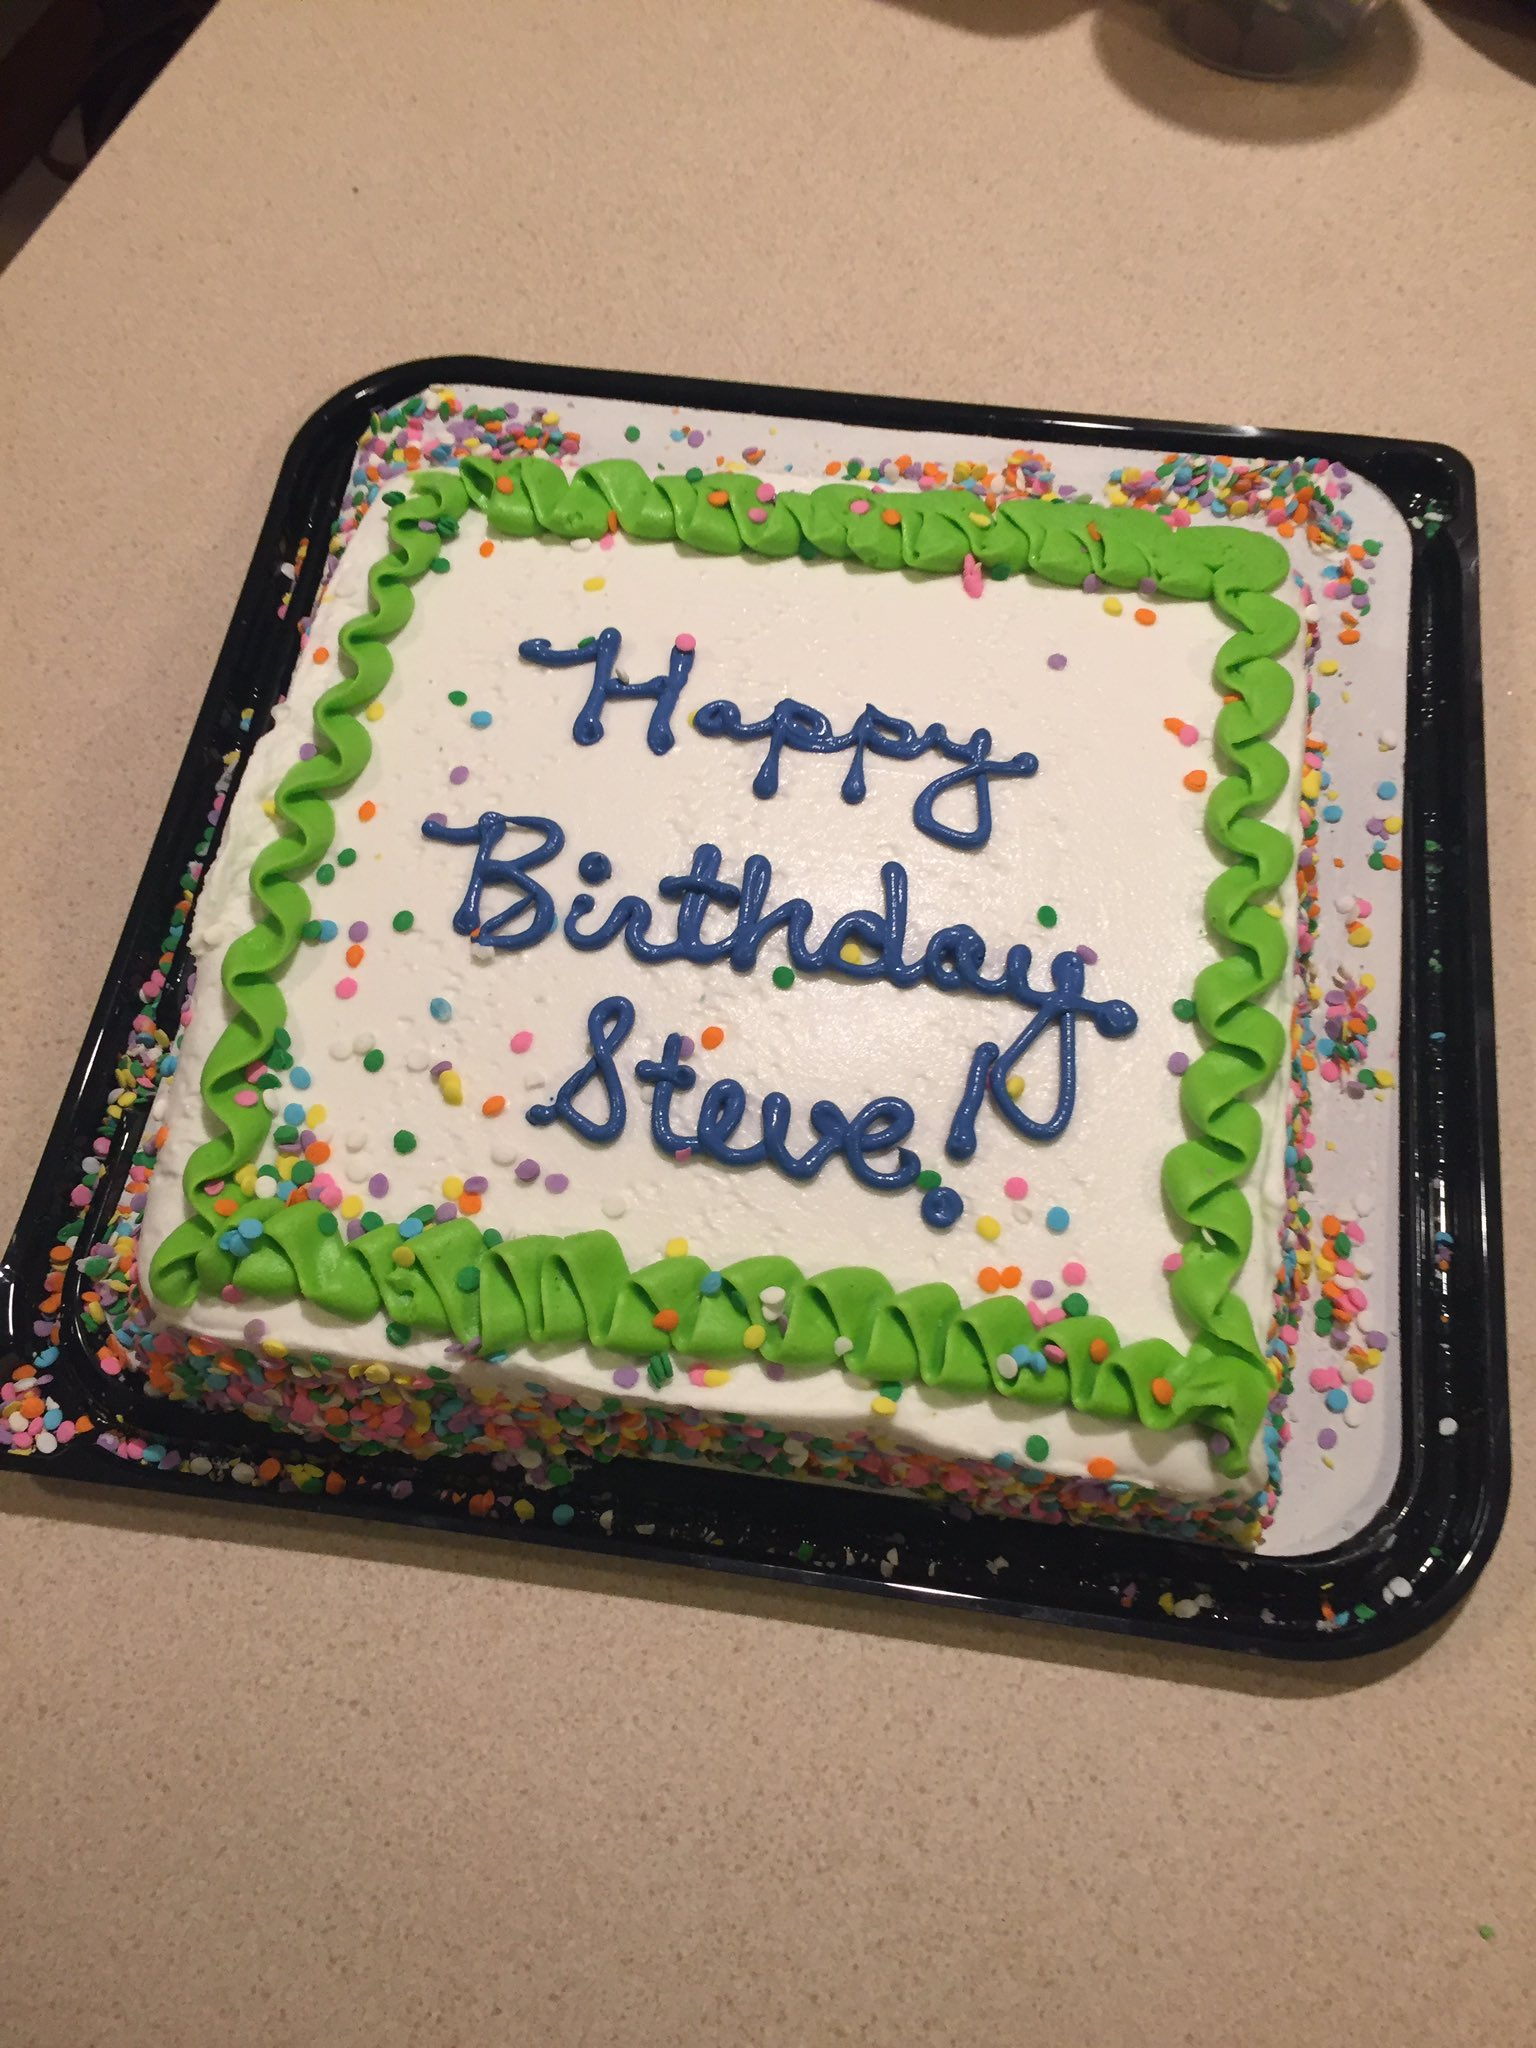 Elijah Daniel On Twitter Got A Walmart Cake For My Bro In Law Nick The Woman Asked His Name I Thought She Said Color So Surprise Me Put